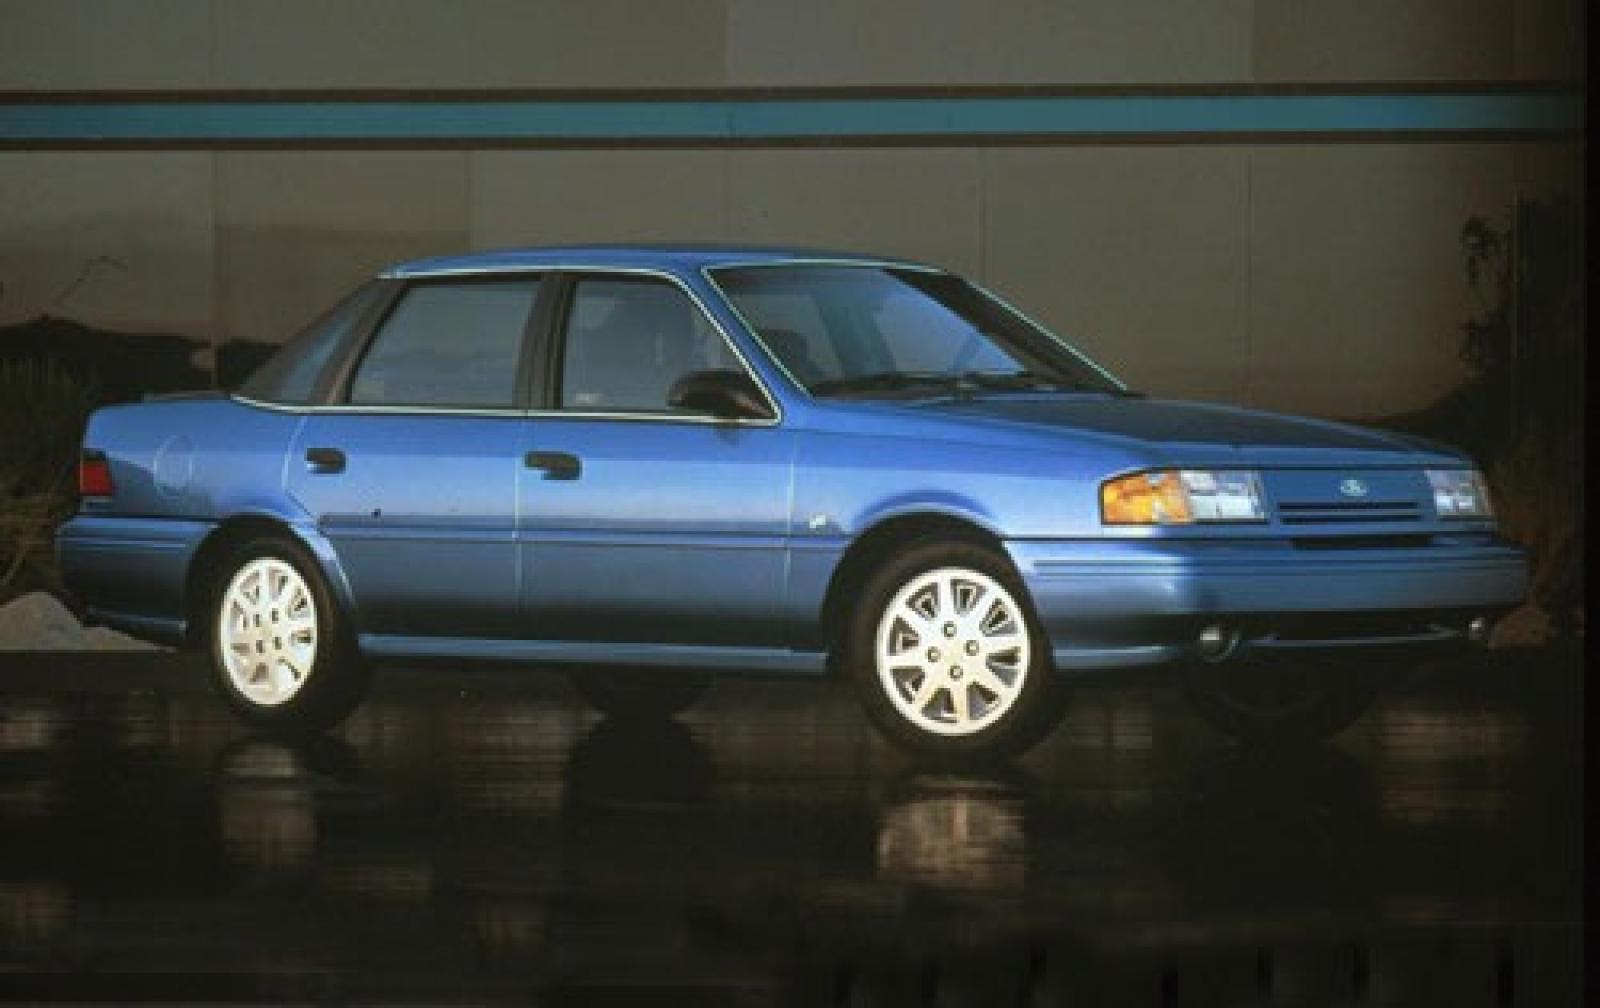 1990 Ford Tempo Information And Photos Zombiedrive 1992 Fuse Box 1 800 1024 1280 1600 Origin